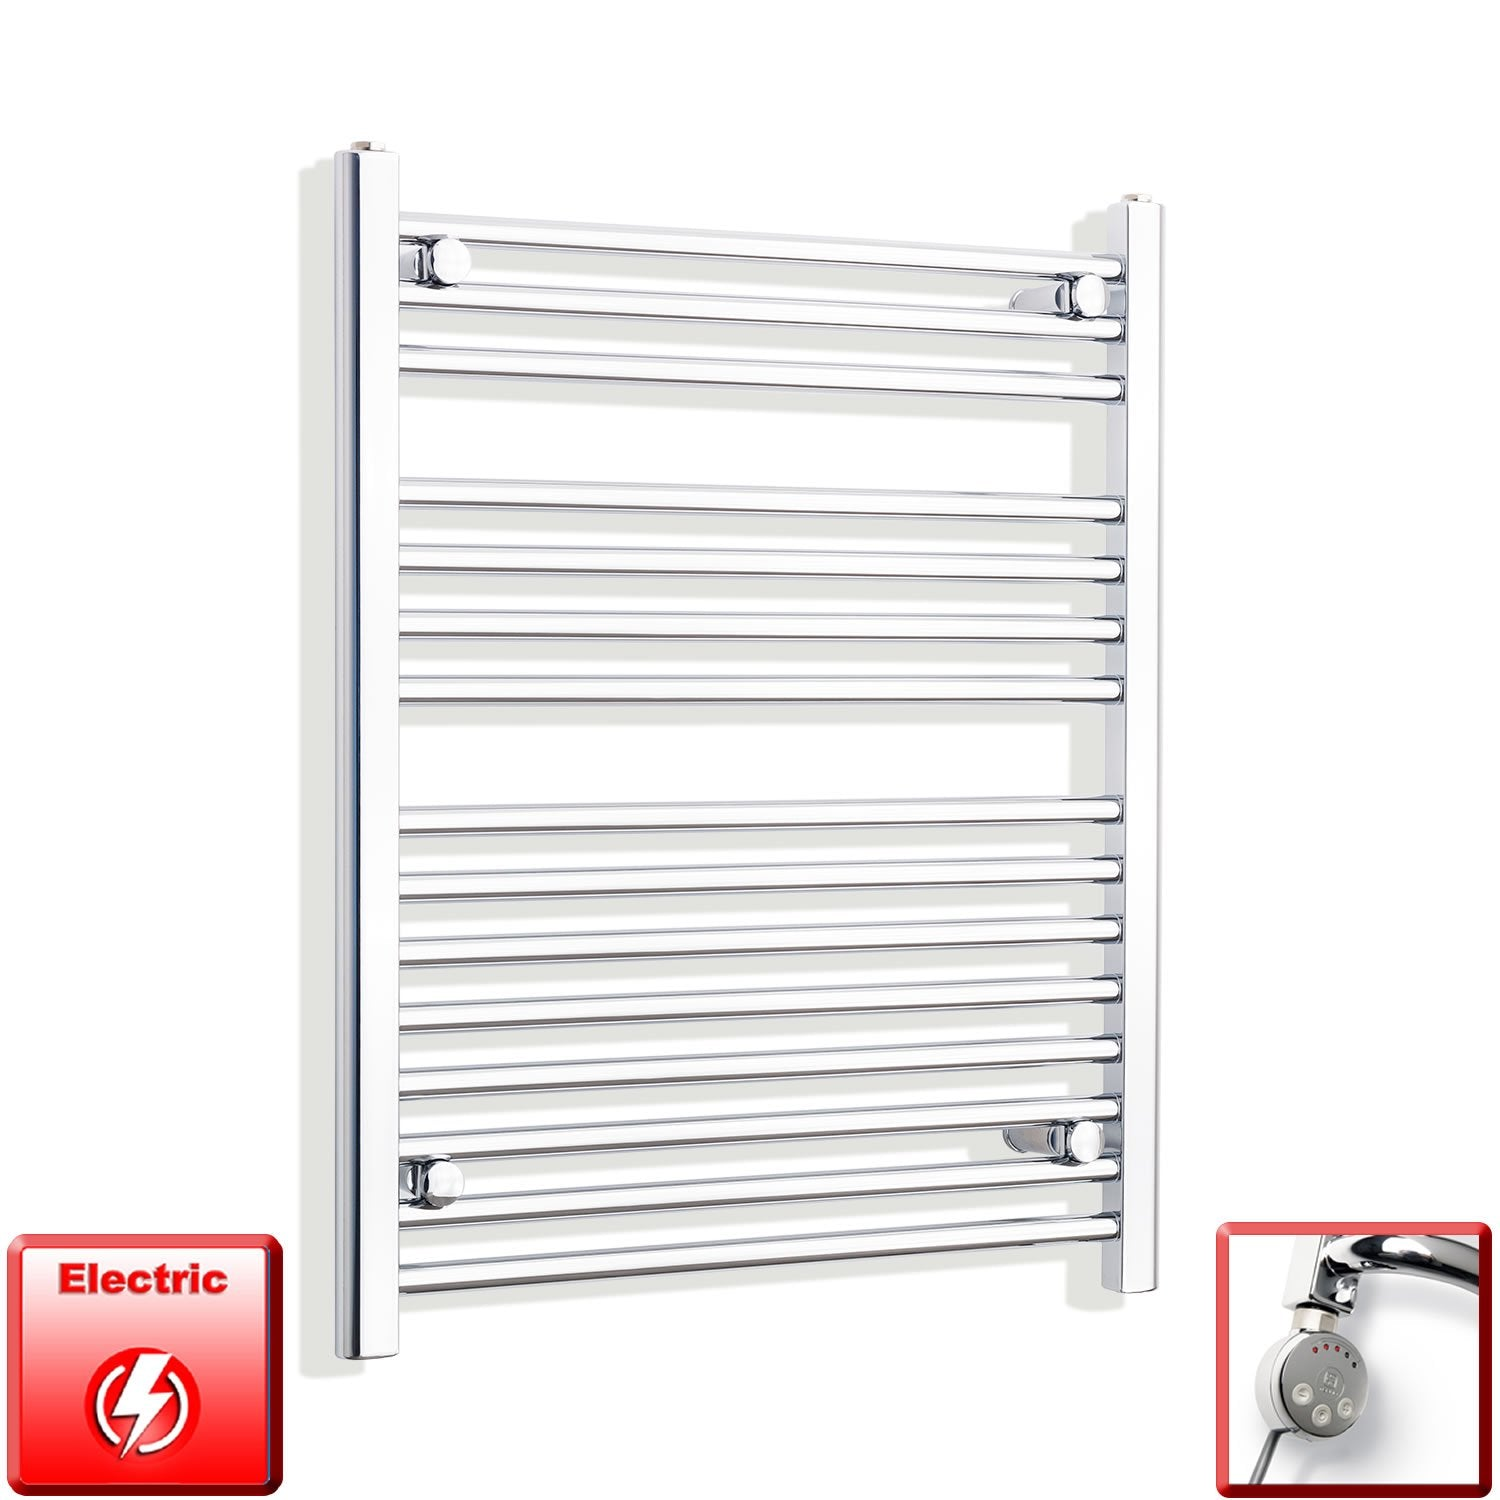 650mm Wide 800mm High Flat Chrome Pre-Filled Electric Heated Towel Rail Radiator HTR,MEG Thermostatic Element